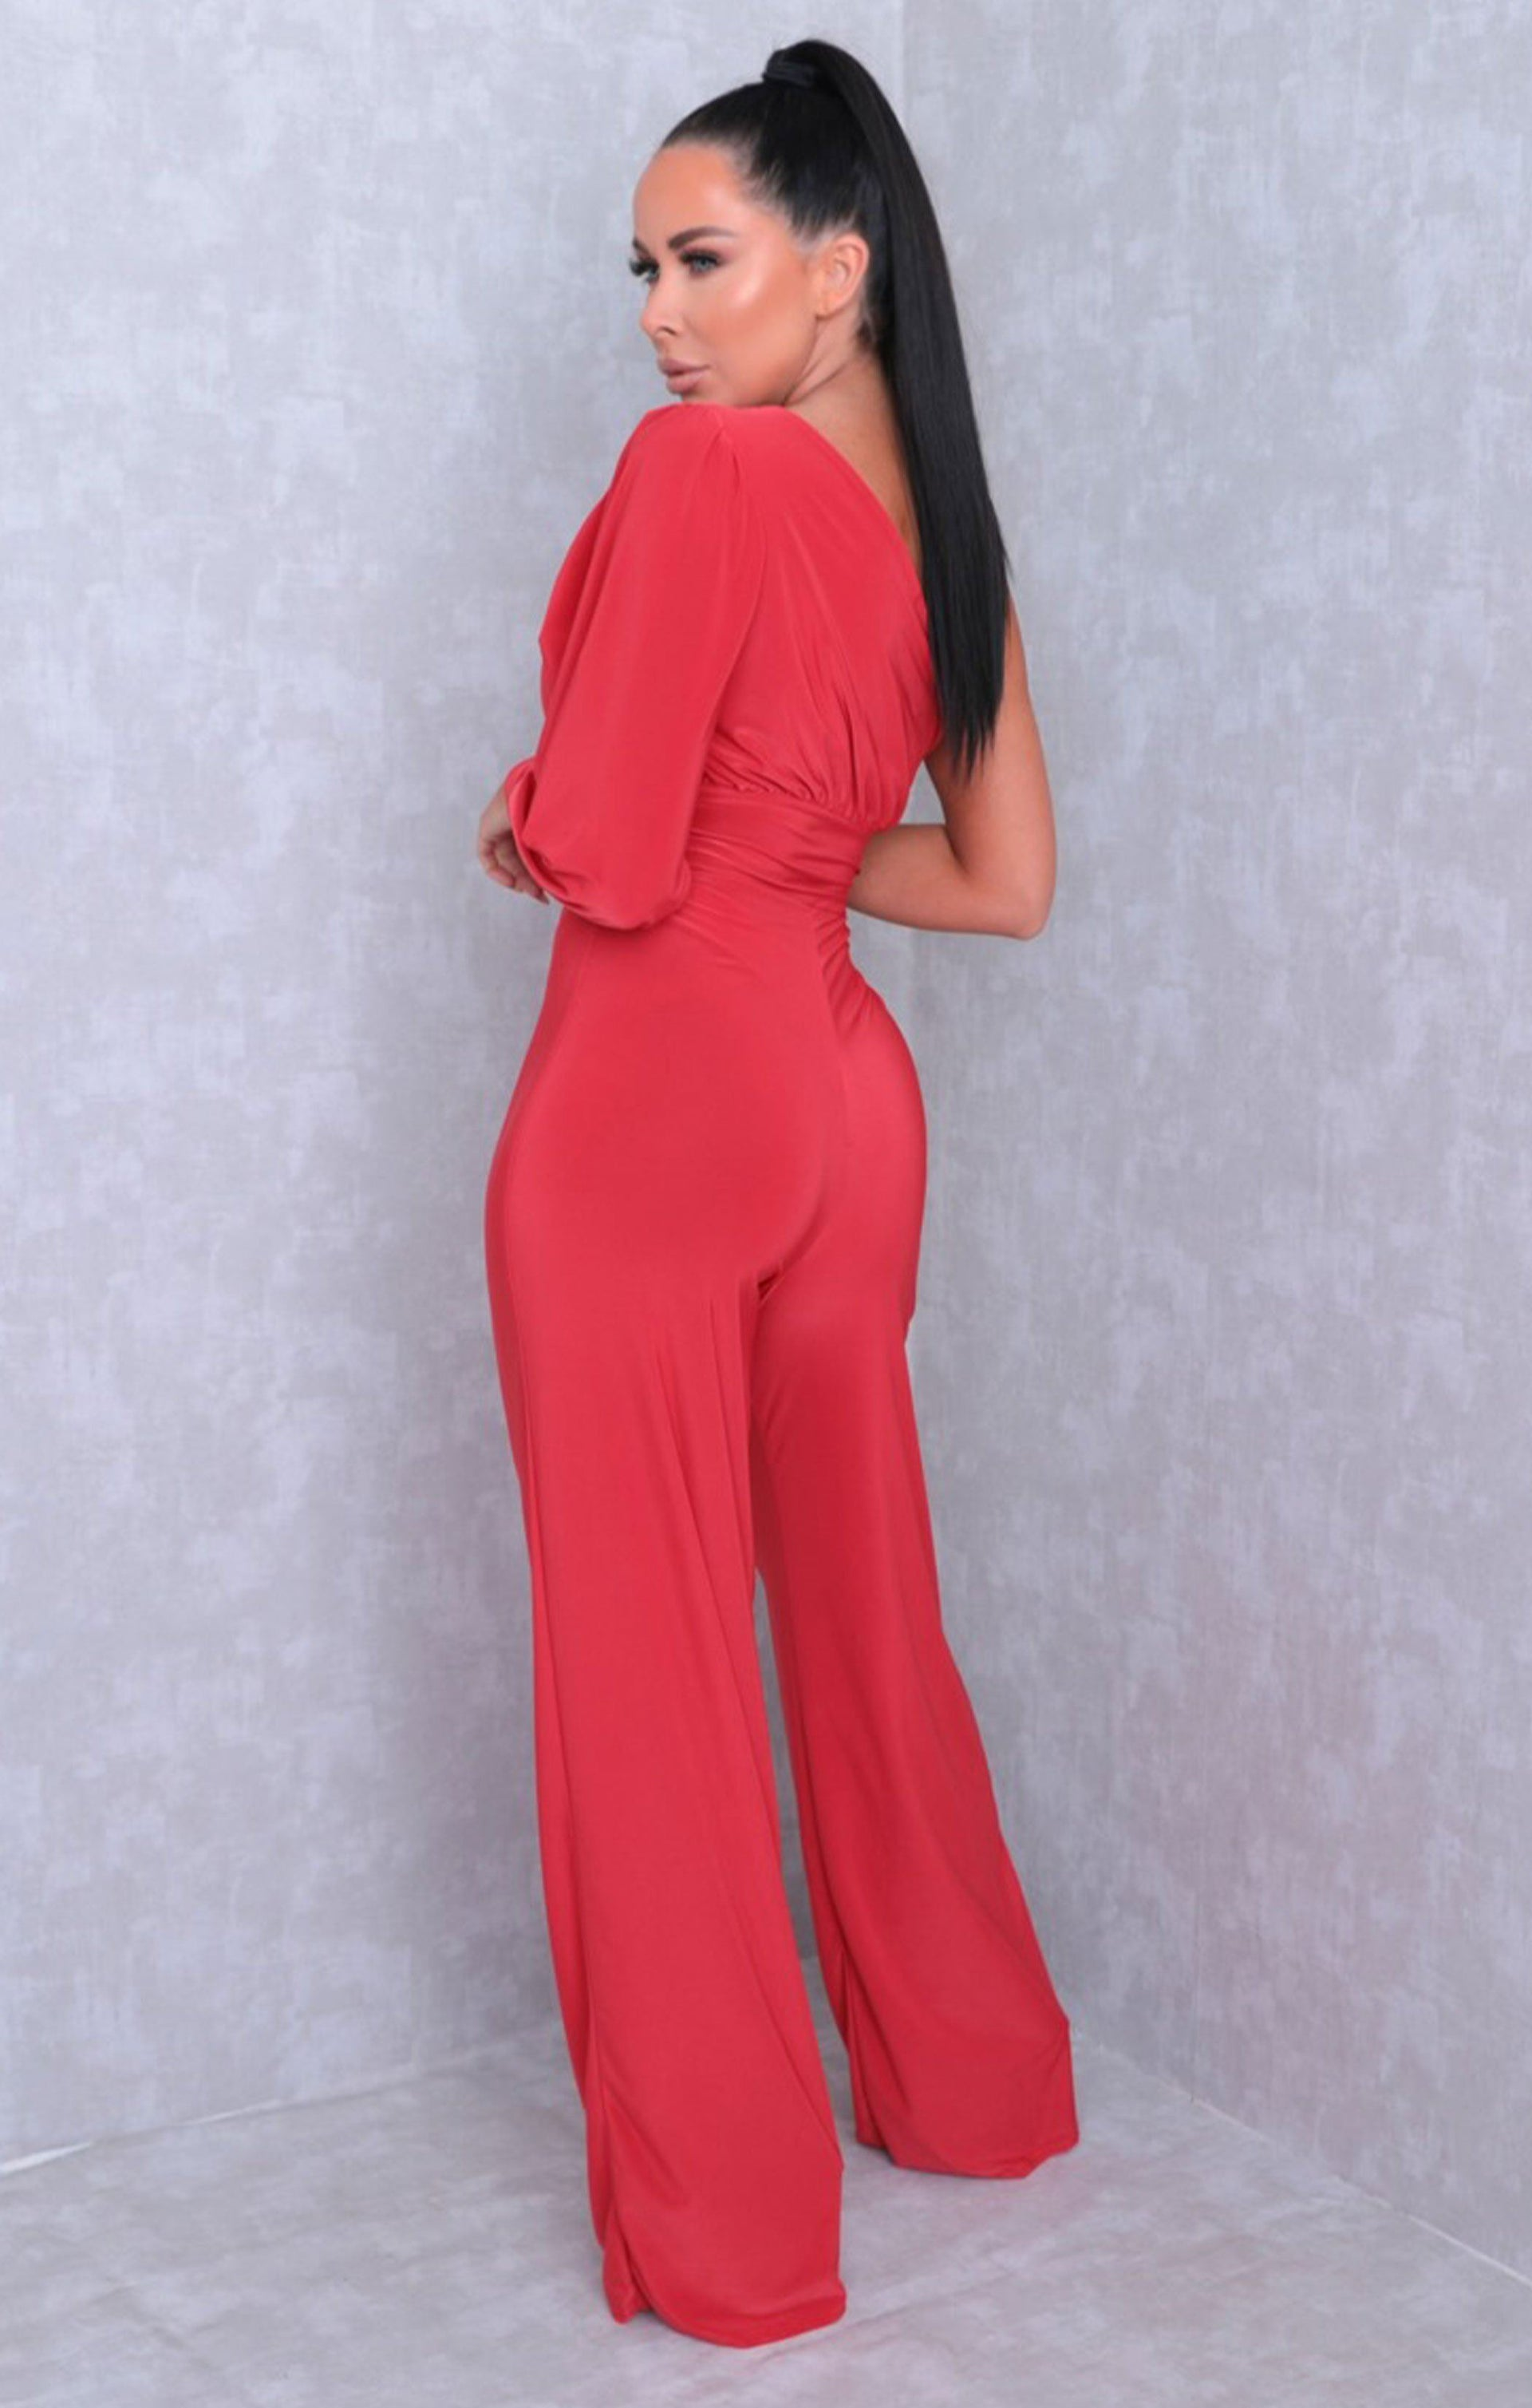 Red One Shoulder Straight Leg Slinky Jumpsuit - Poppy